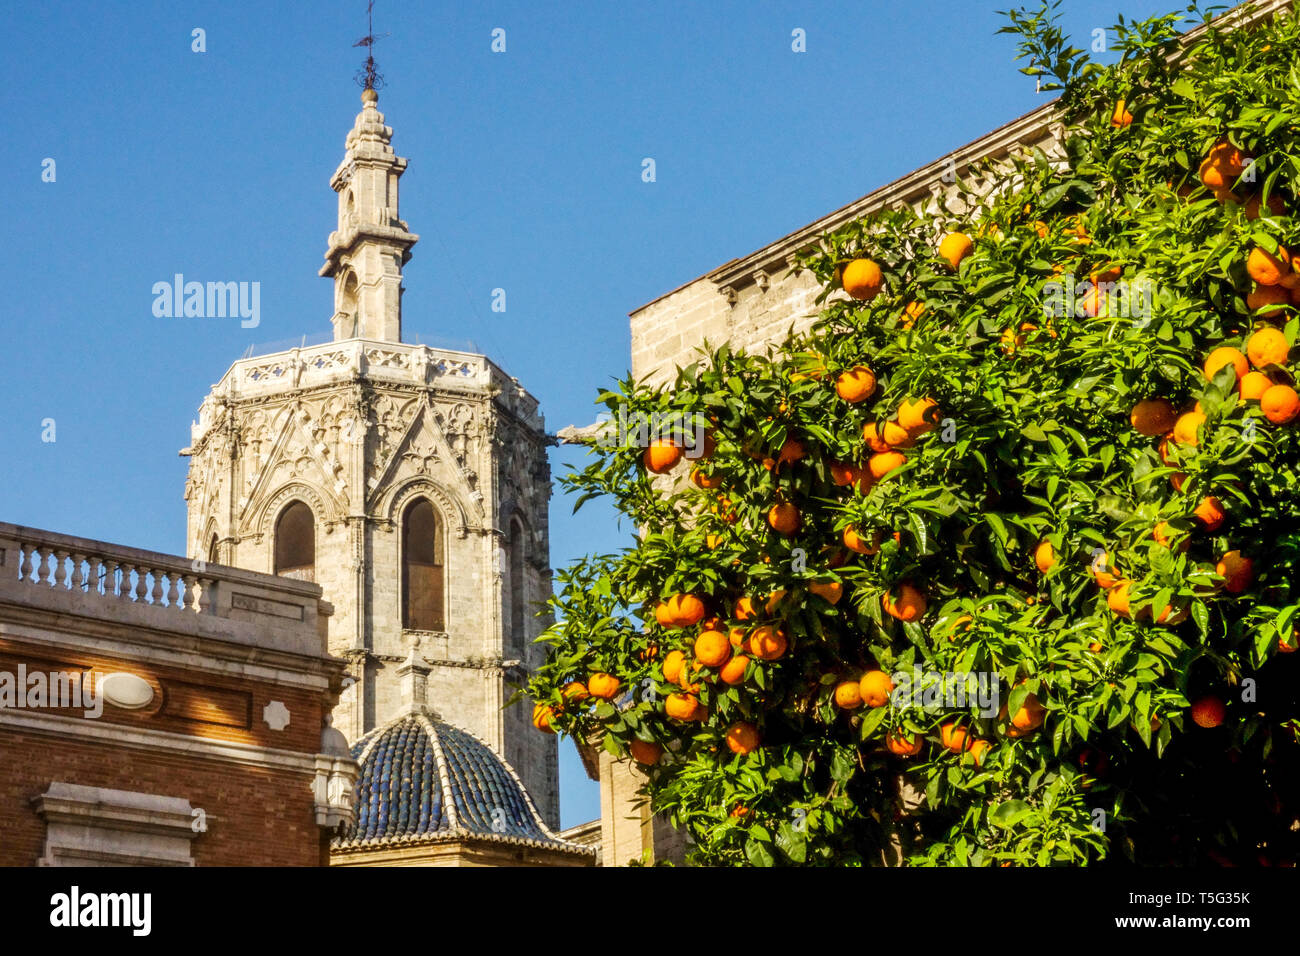 Valencia Spain Architecture Valencia Cathedral Bell Tower, Valencia Oranges tree Spain Old Town Stock Photo